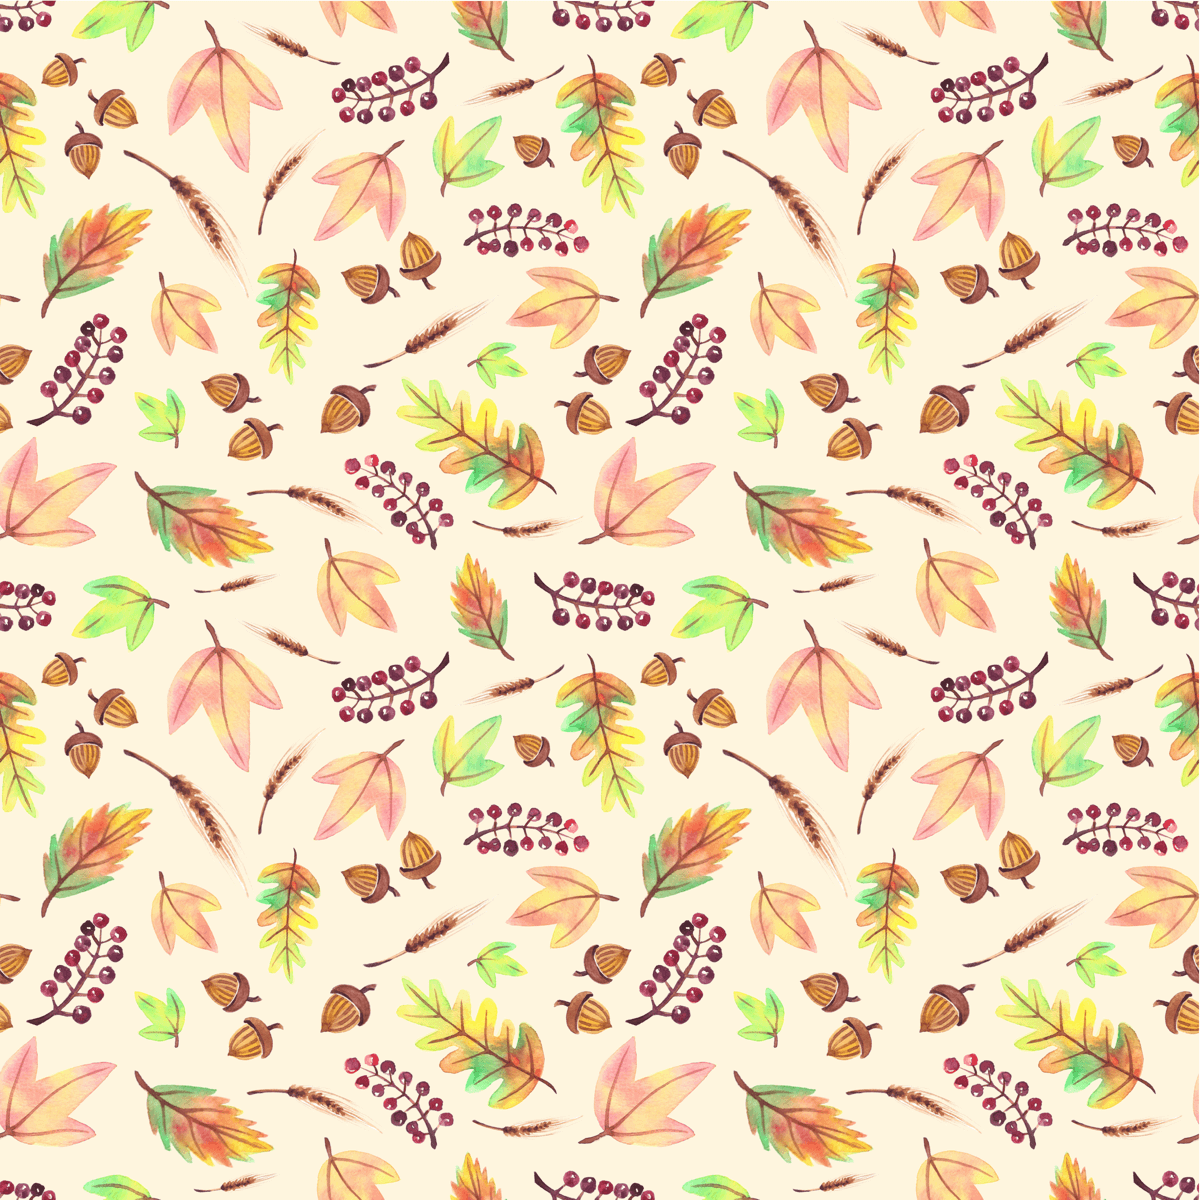 Fall leaves, berries and acorns surface pattern